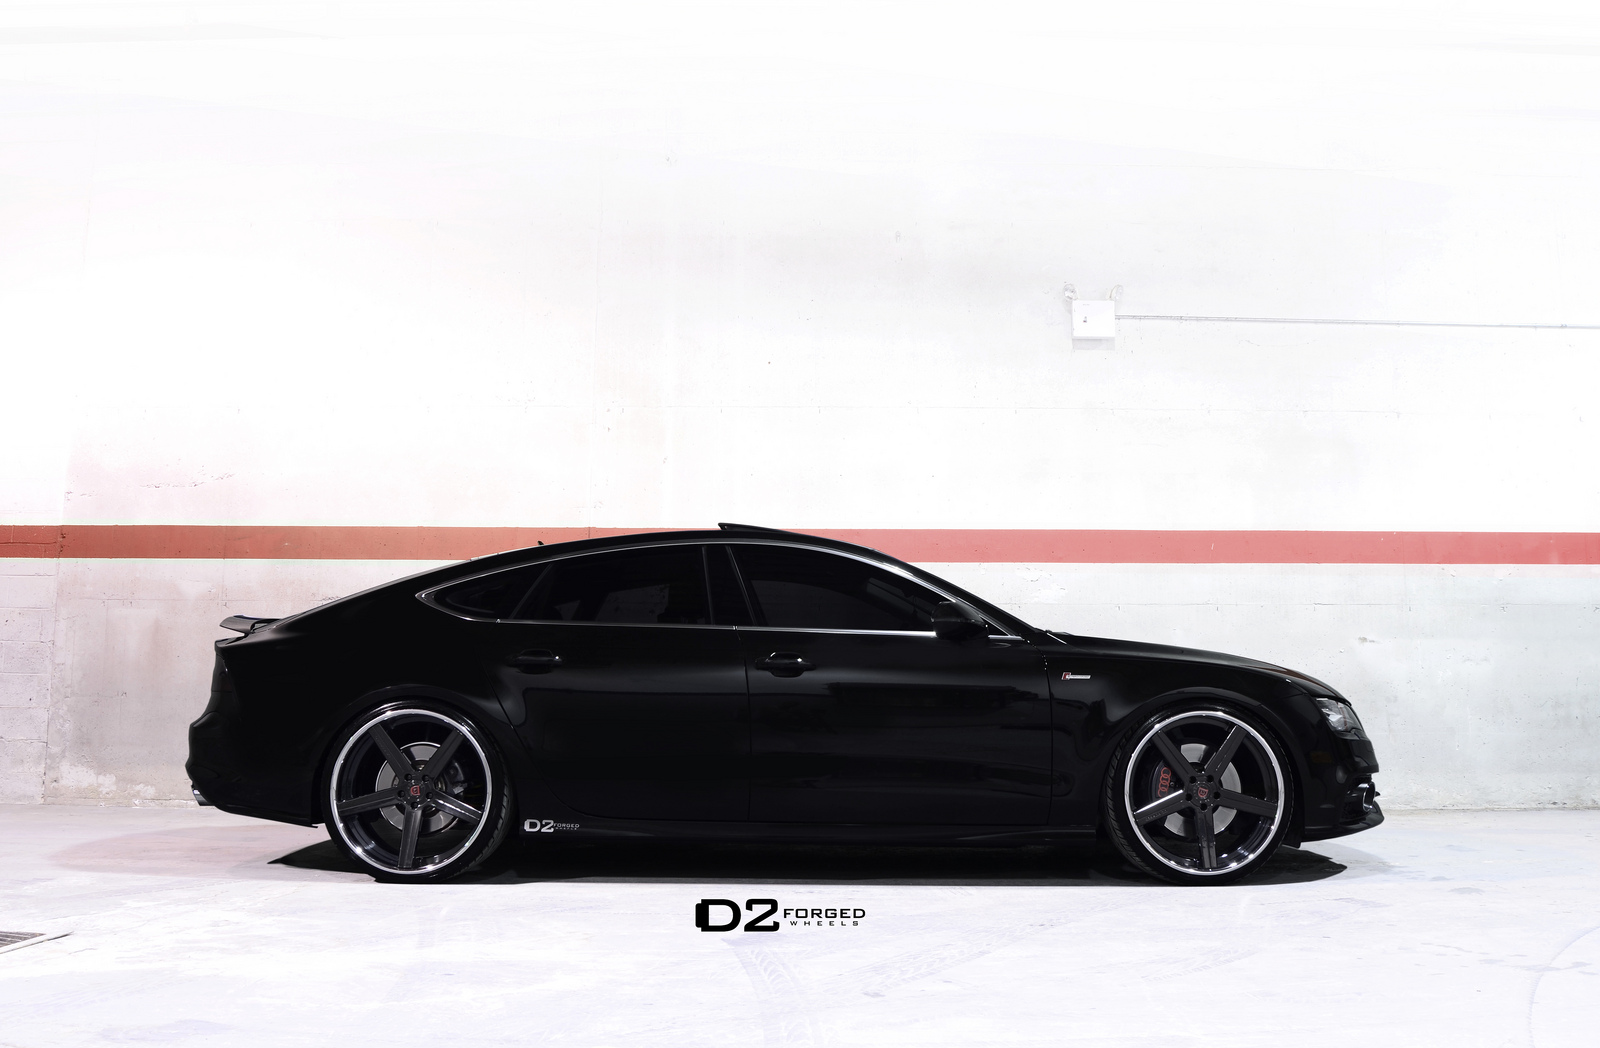 D2forged Audi A7 Cv2 Picture 87406